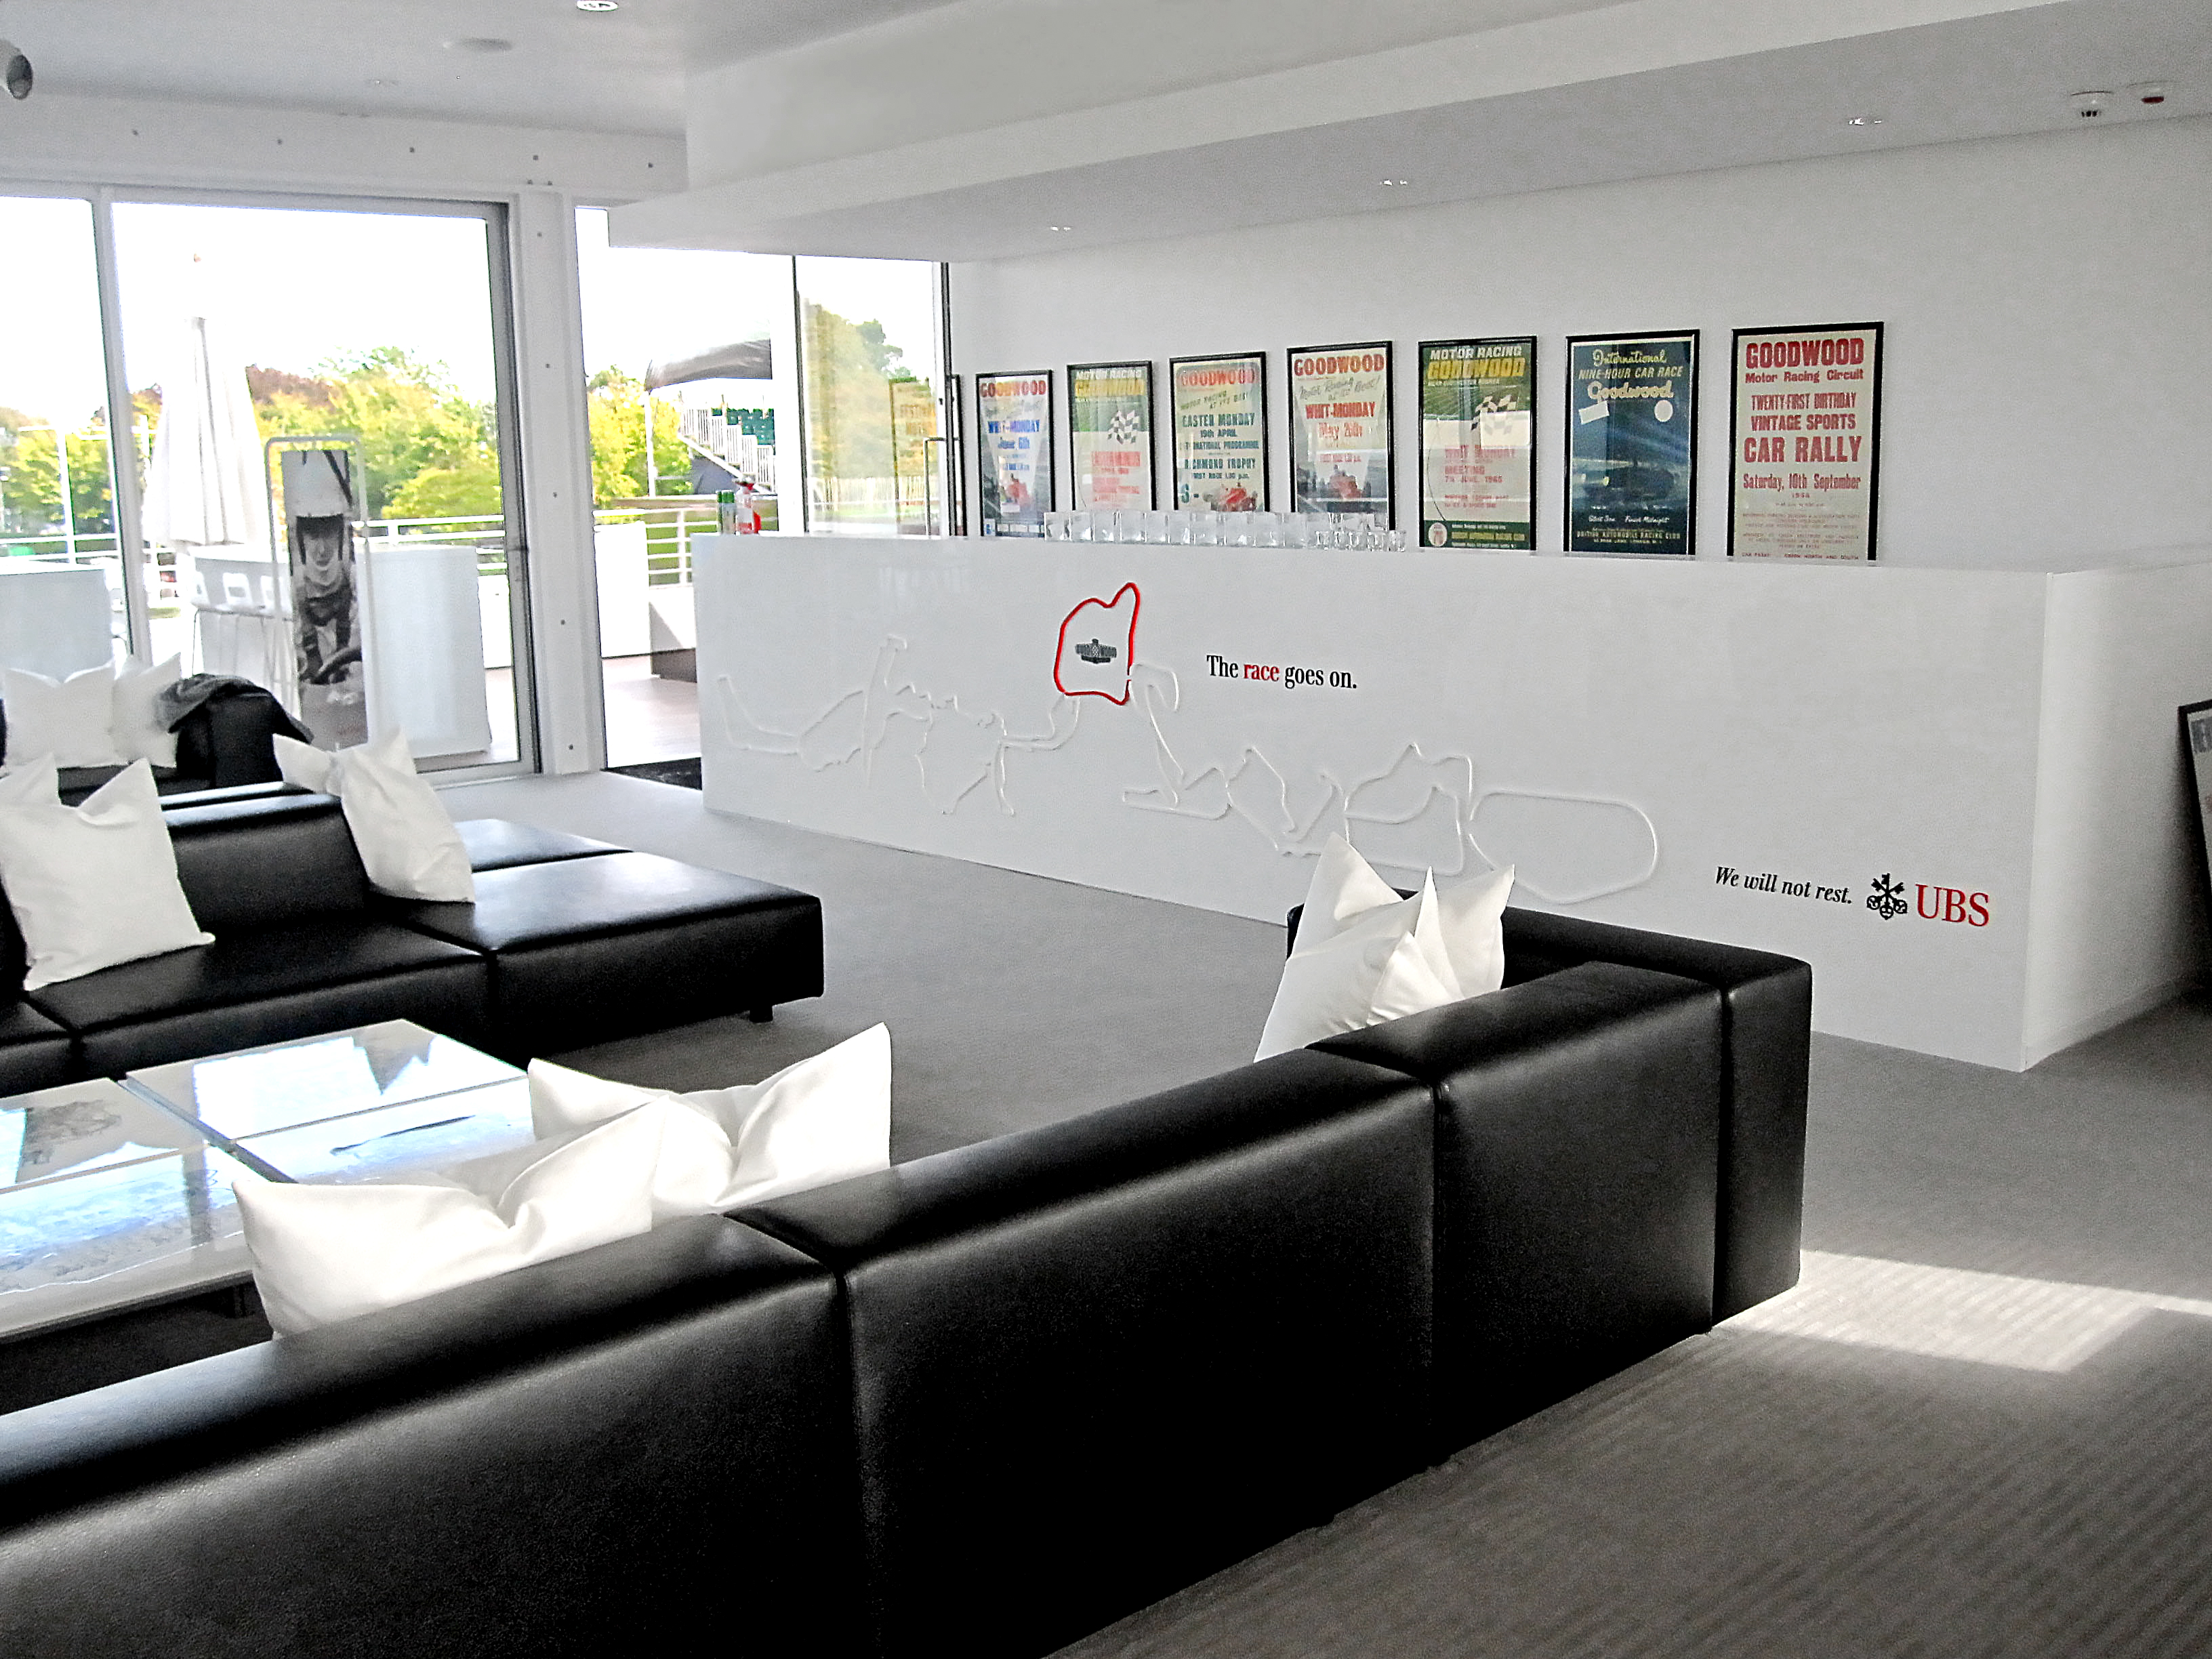 UBS Goodwood Event Lounge